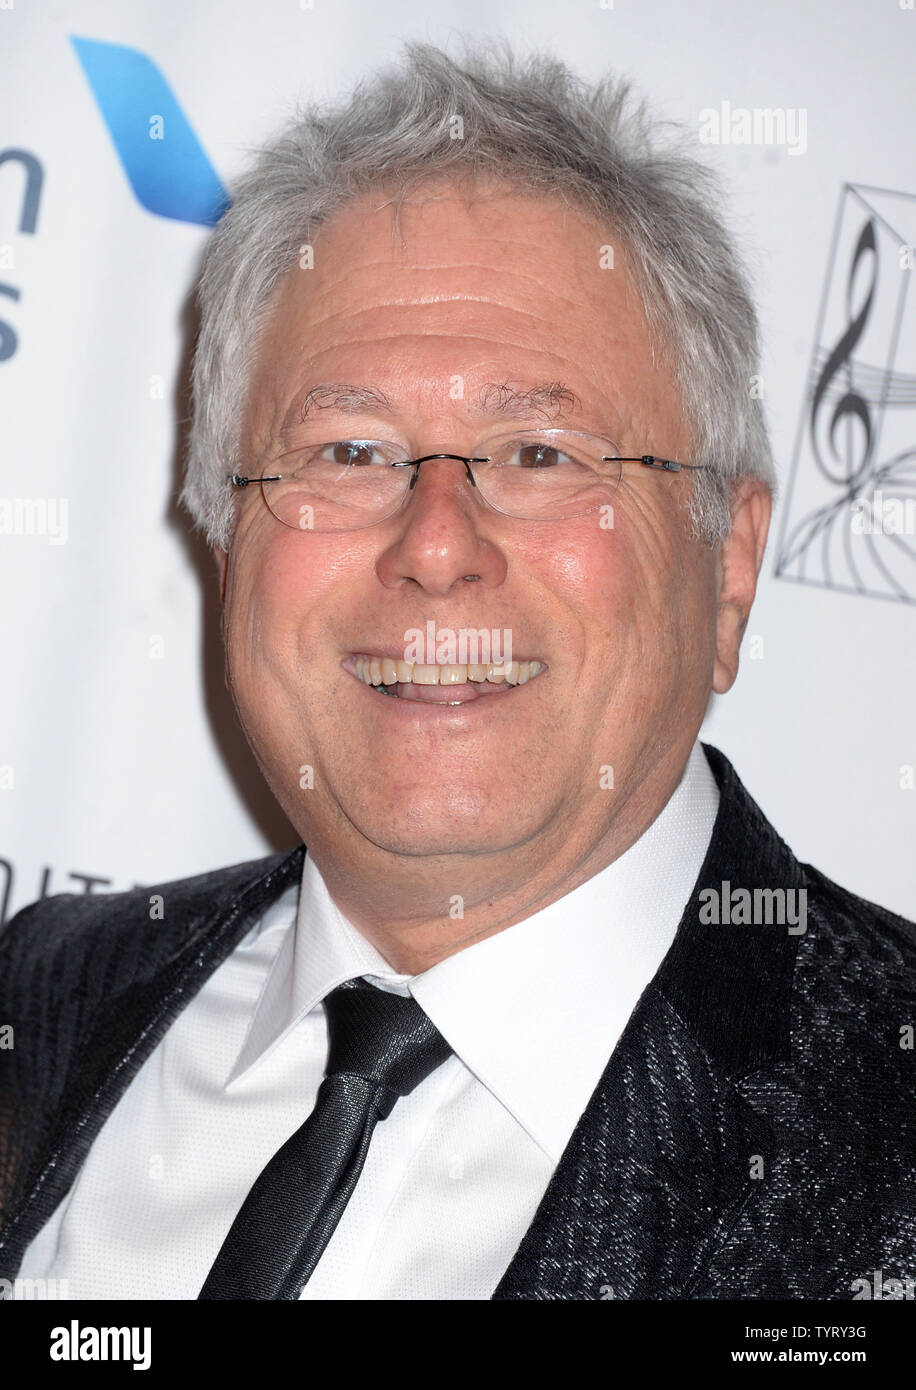 Alan Menken arrives on the red carpet at the Songwriters Hall Of Fame 48th Annual Induction and Awards at New York Marriott Marquis Hotel on June 15, 2017 in New York City.    Photo by Dennis Van Tine/UPI - Stock Image